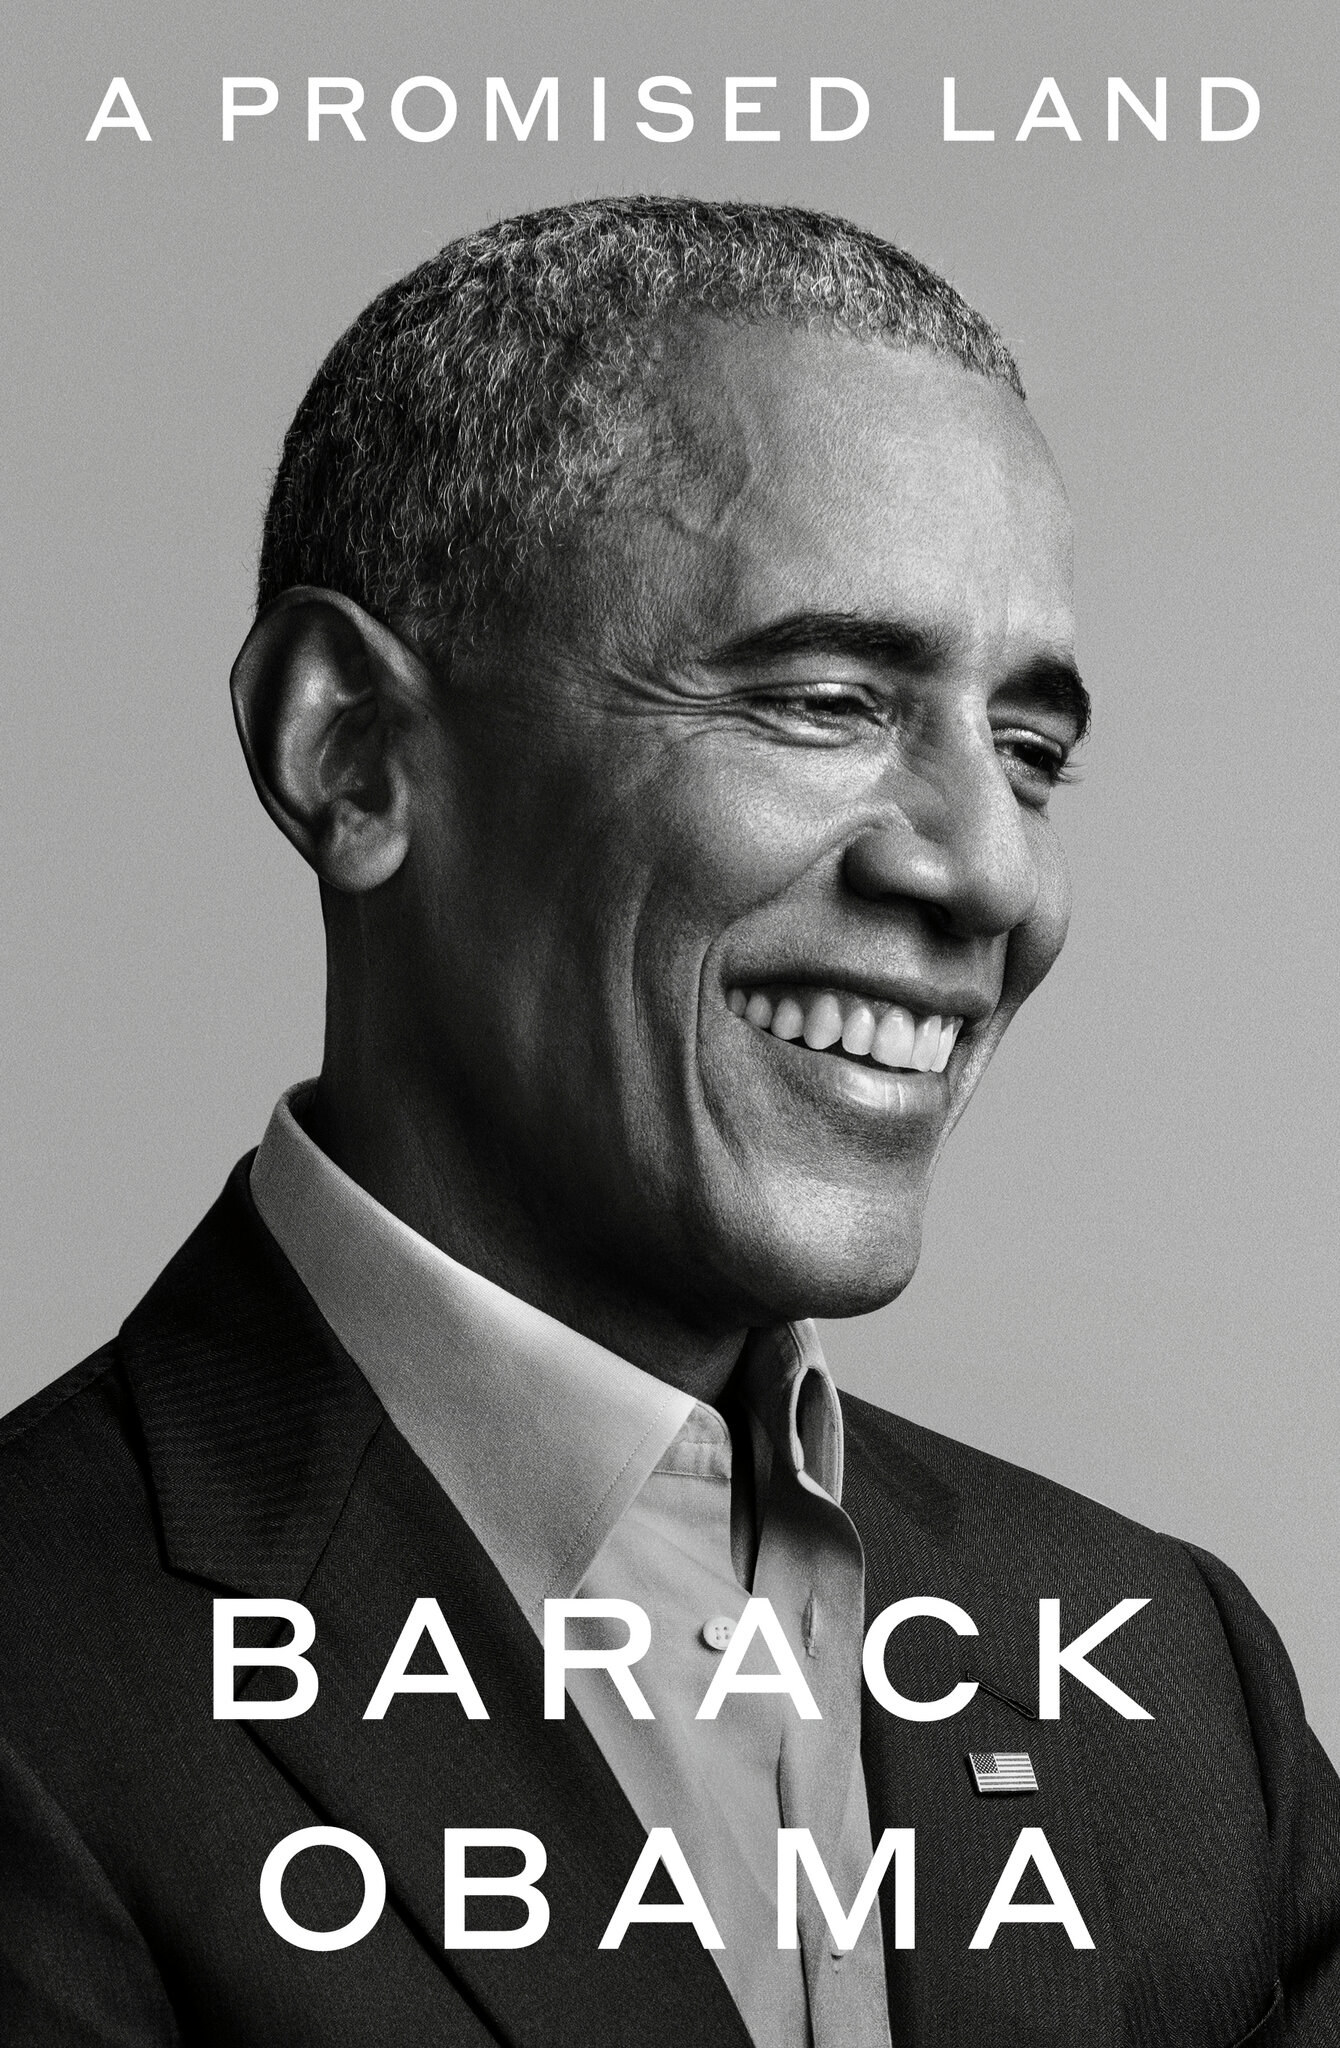 the book cover with Barack Obama's profile photo on it